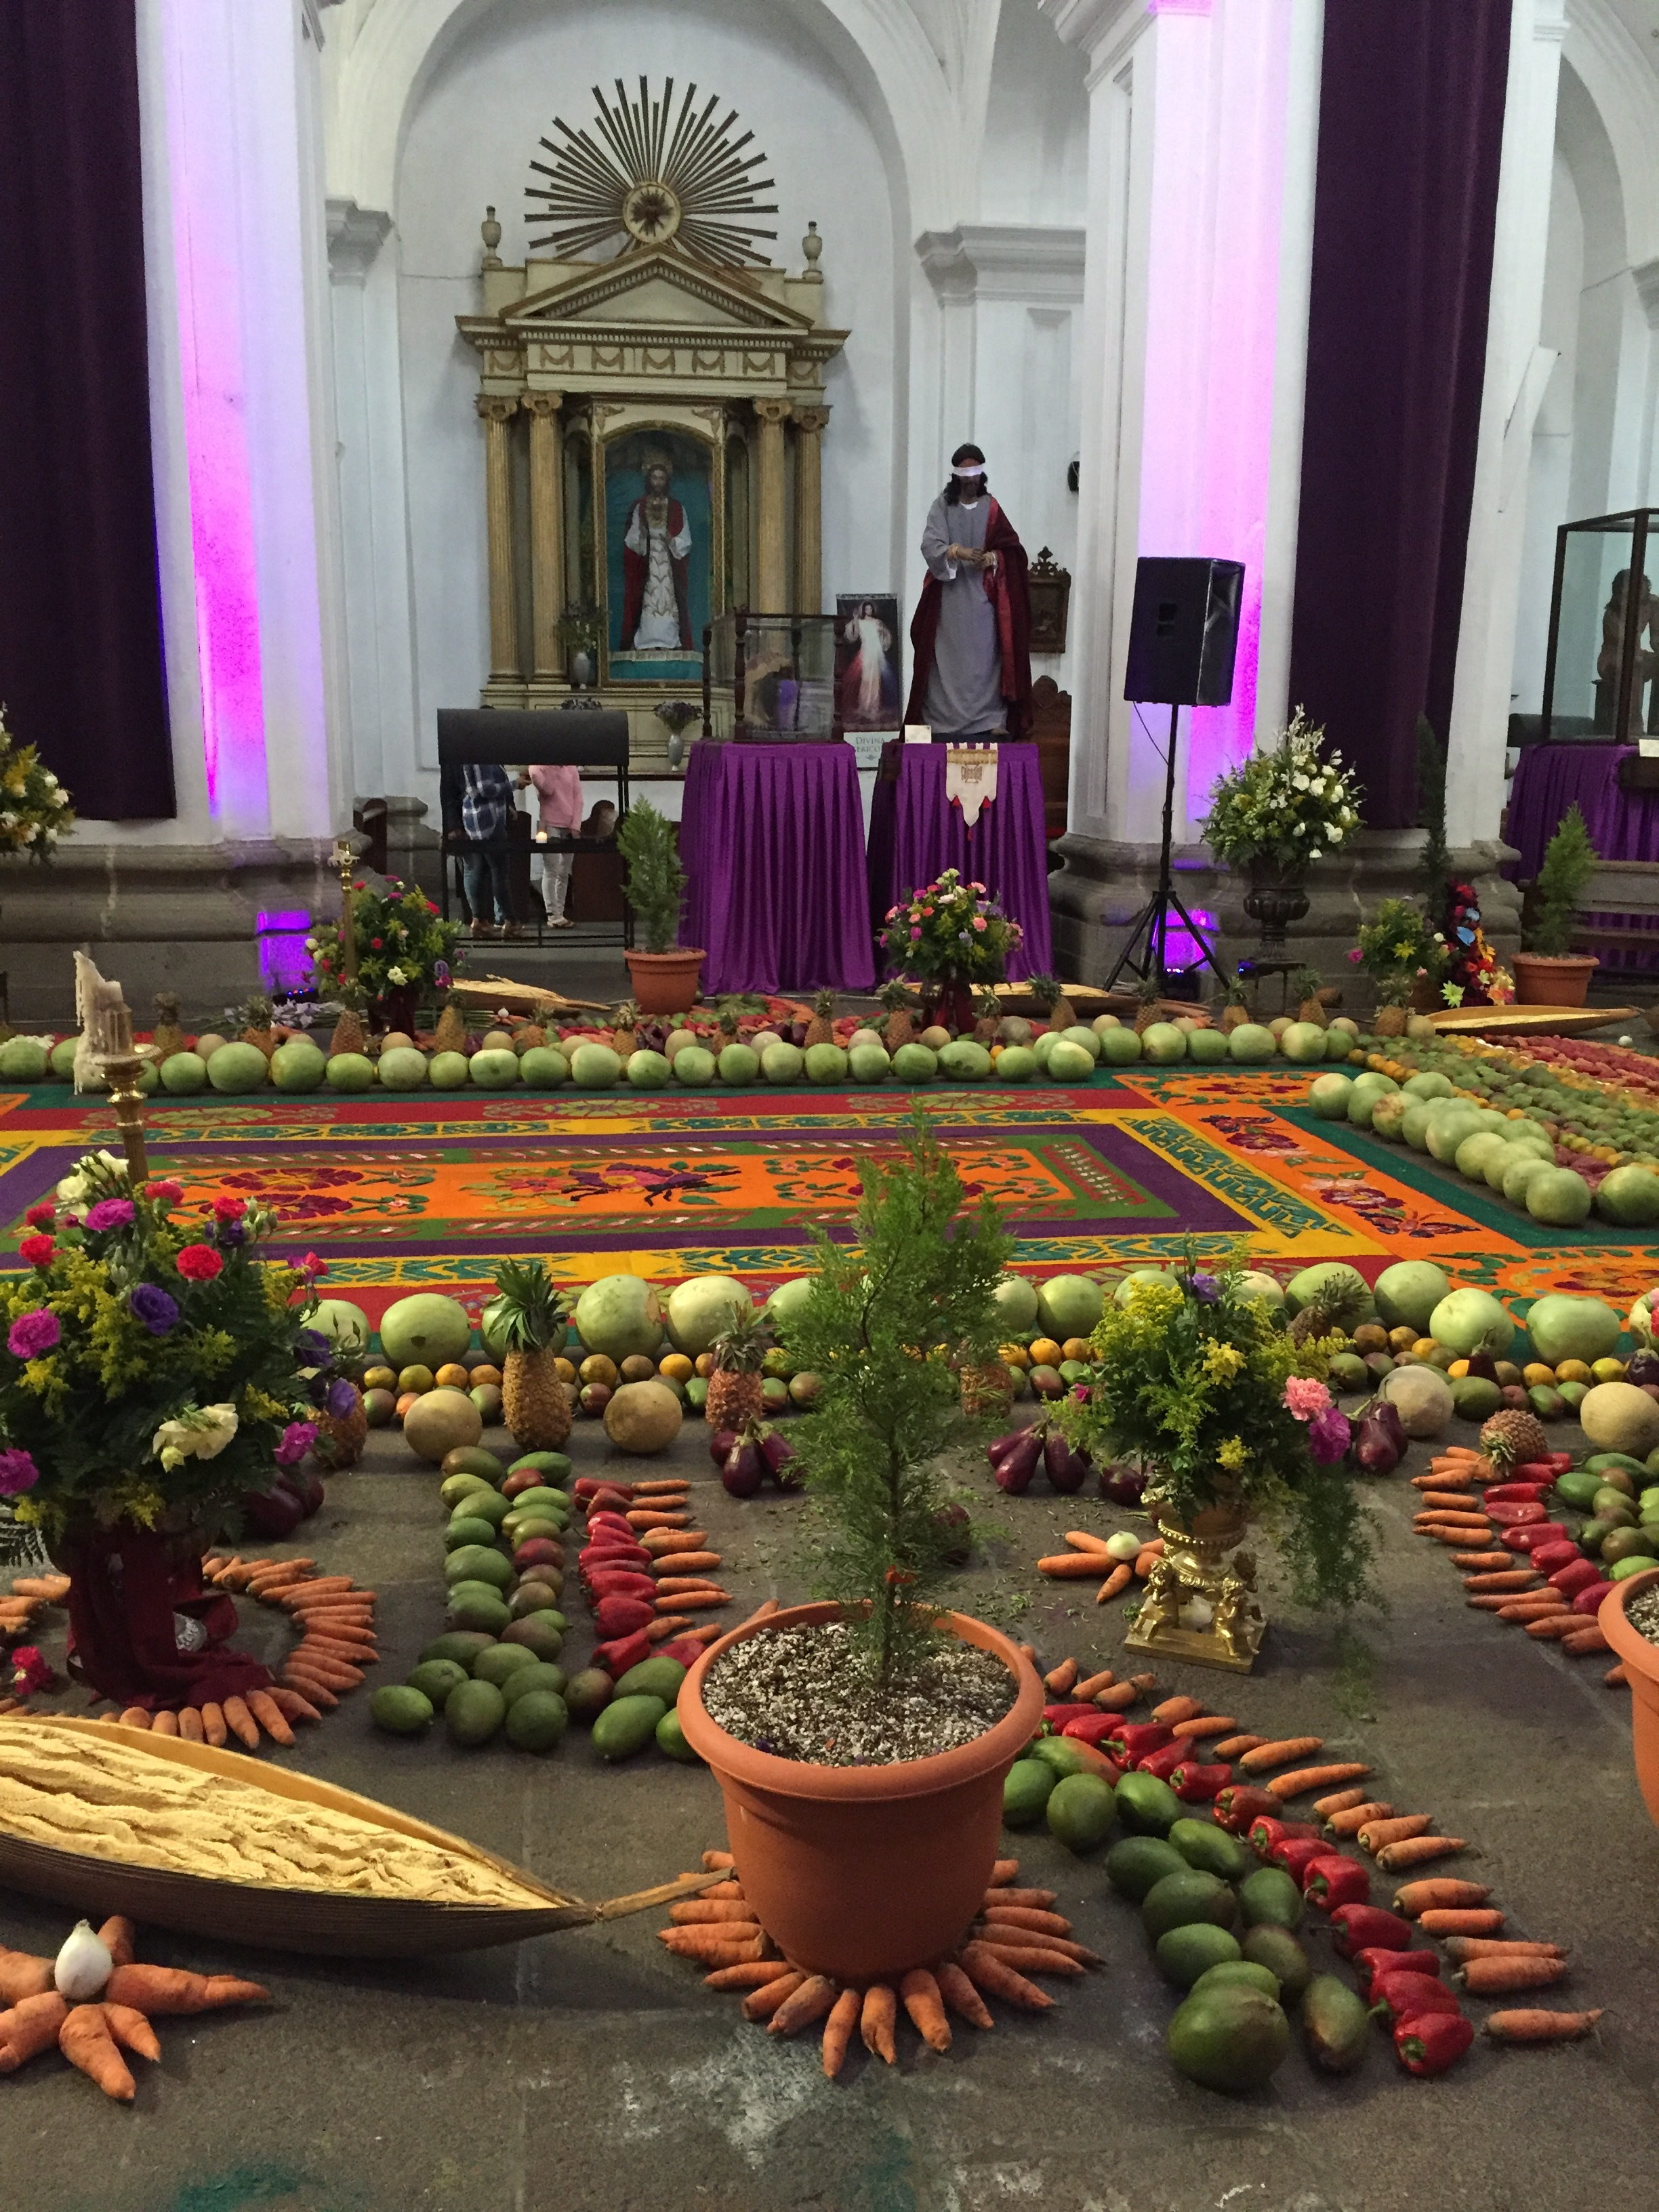 A local church decorated in traditional style for Semana Santa week. Note the sawdust carpet and the cornucopia of fruits and vegetables.